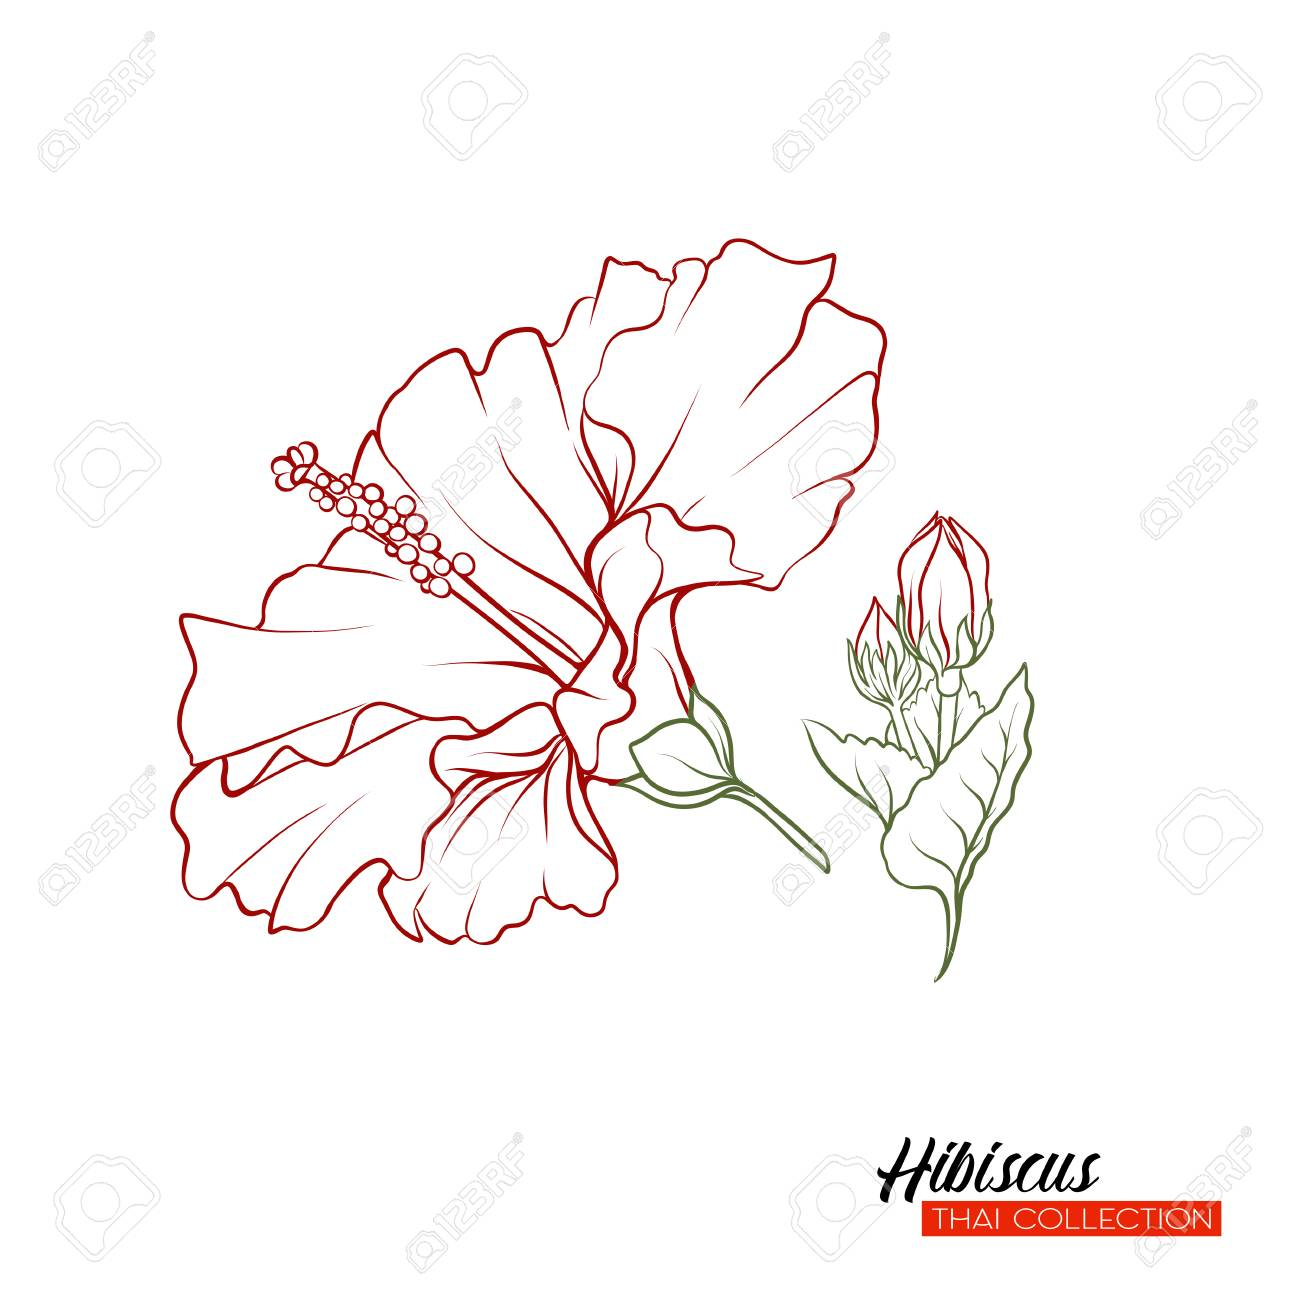 Hibiscus Flower Botanical Illustration Style Stock Vector Outline Royalty Free Cliparts Vectors And Stock Illustration Image 111753932